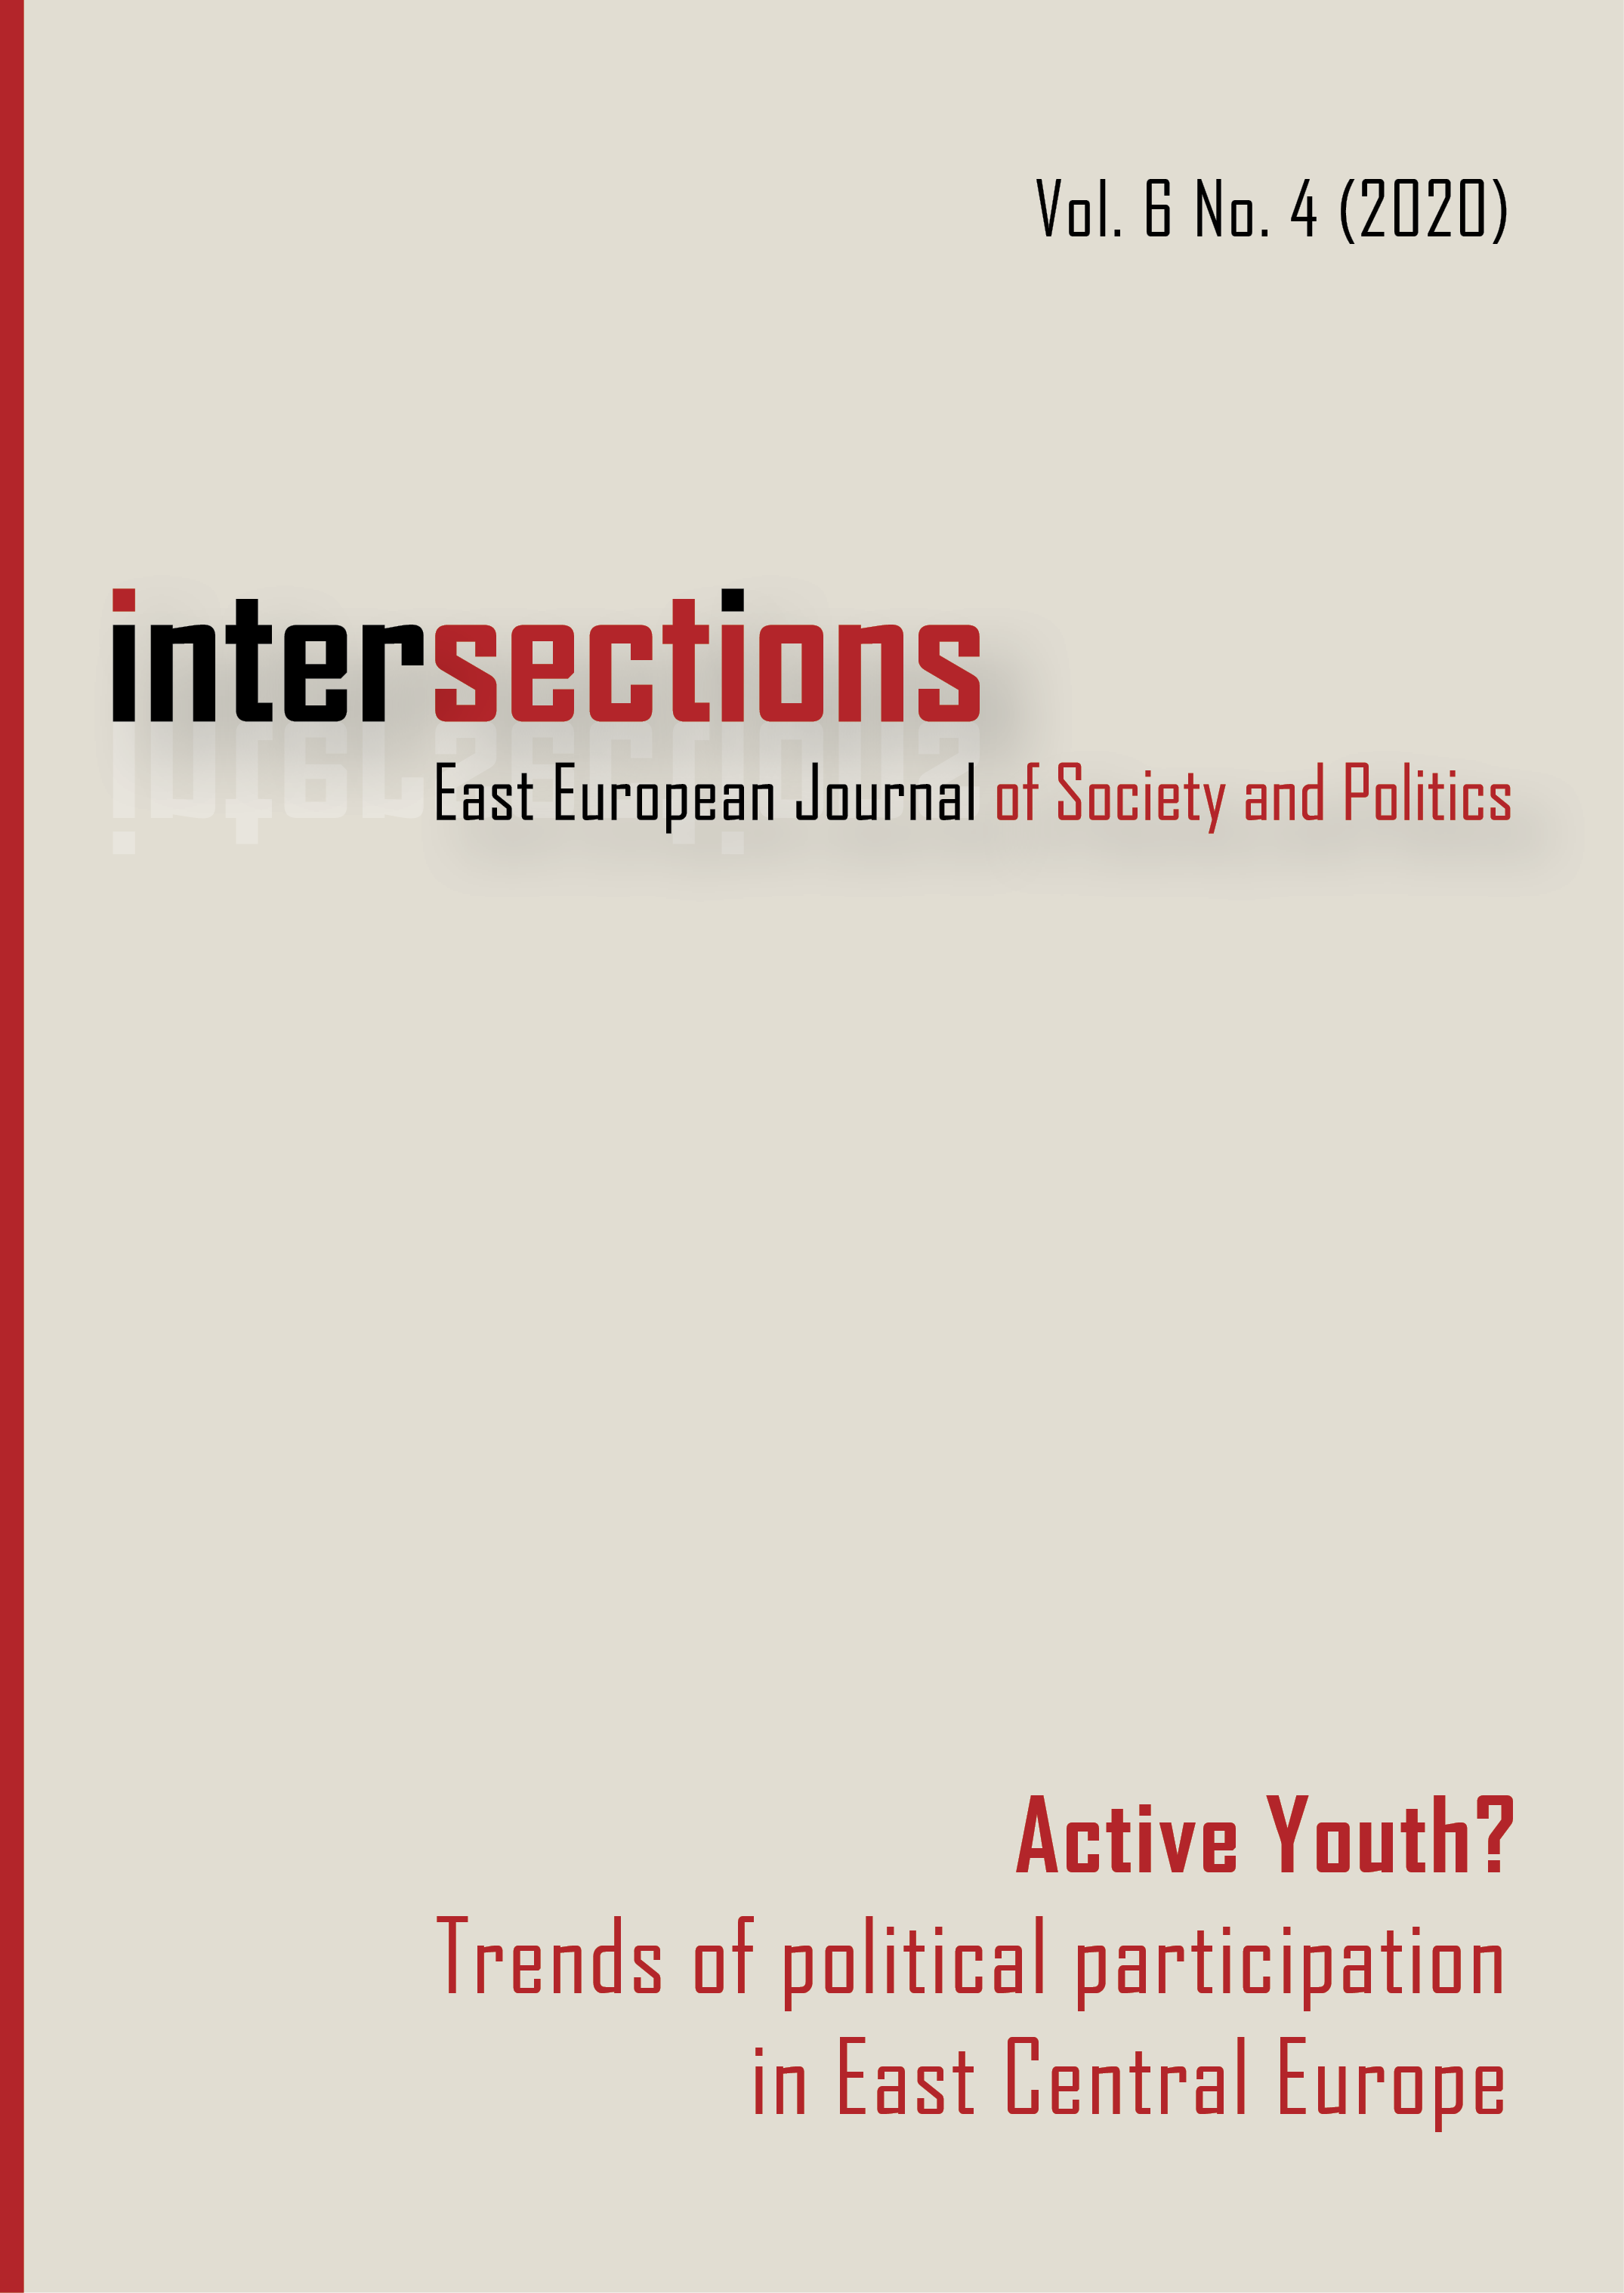 View Vol. 6 No. 4 (2020): Active Youth? Trends of political participation in East Central Europe